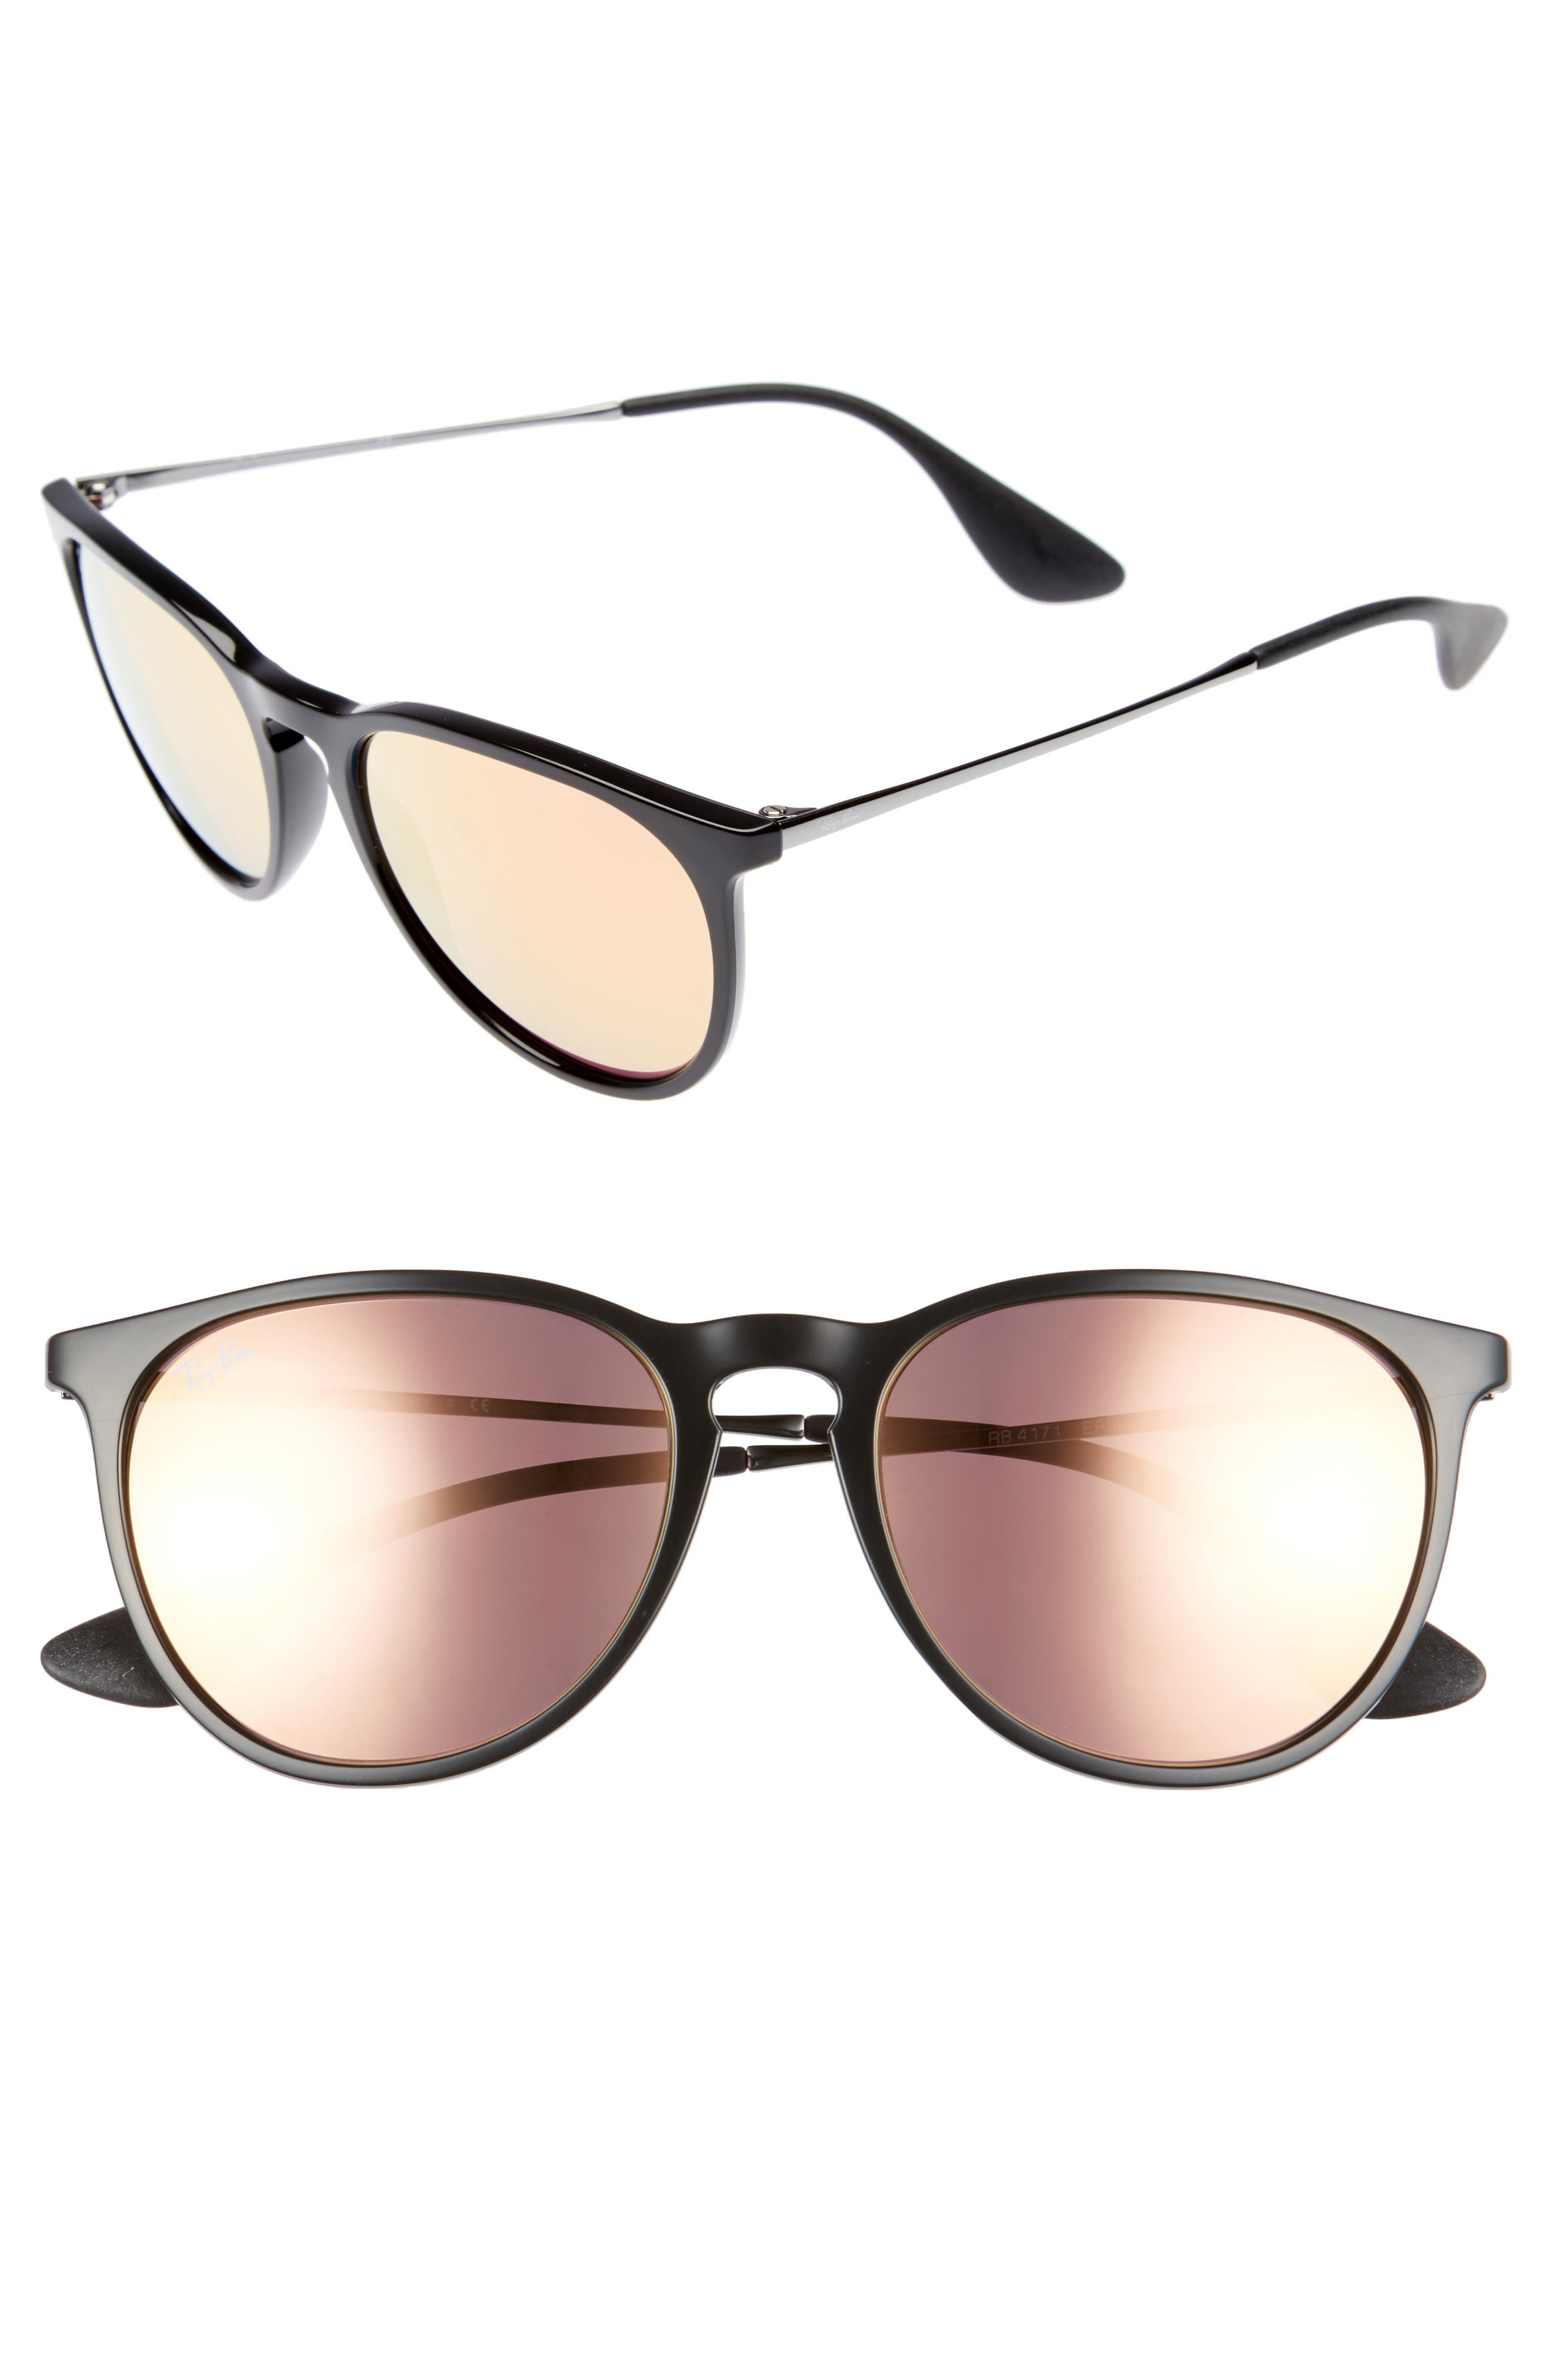 Main Image - Ray-Ban Erika 54mm Mirrored Sunglasses (Nordstrom Exclusive)